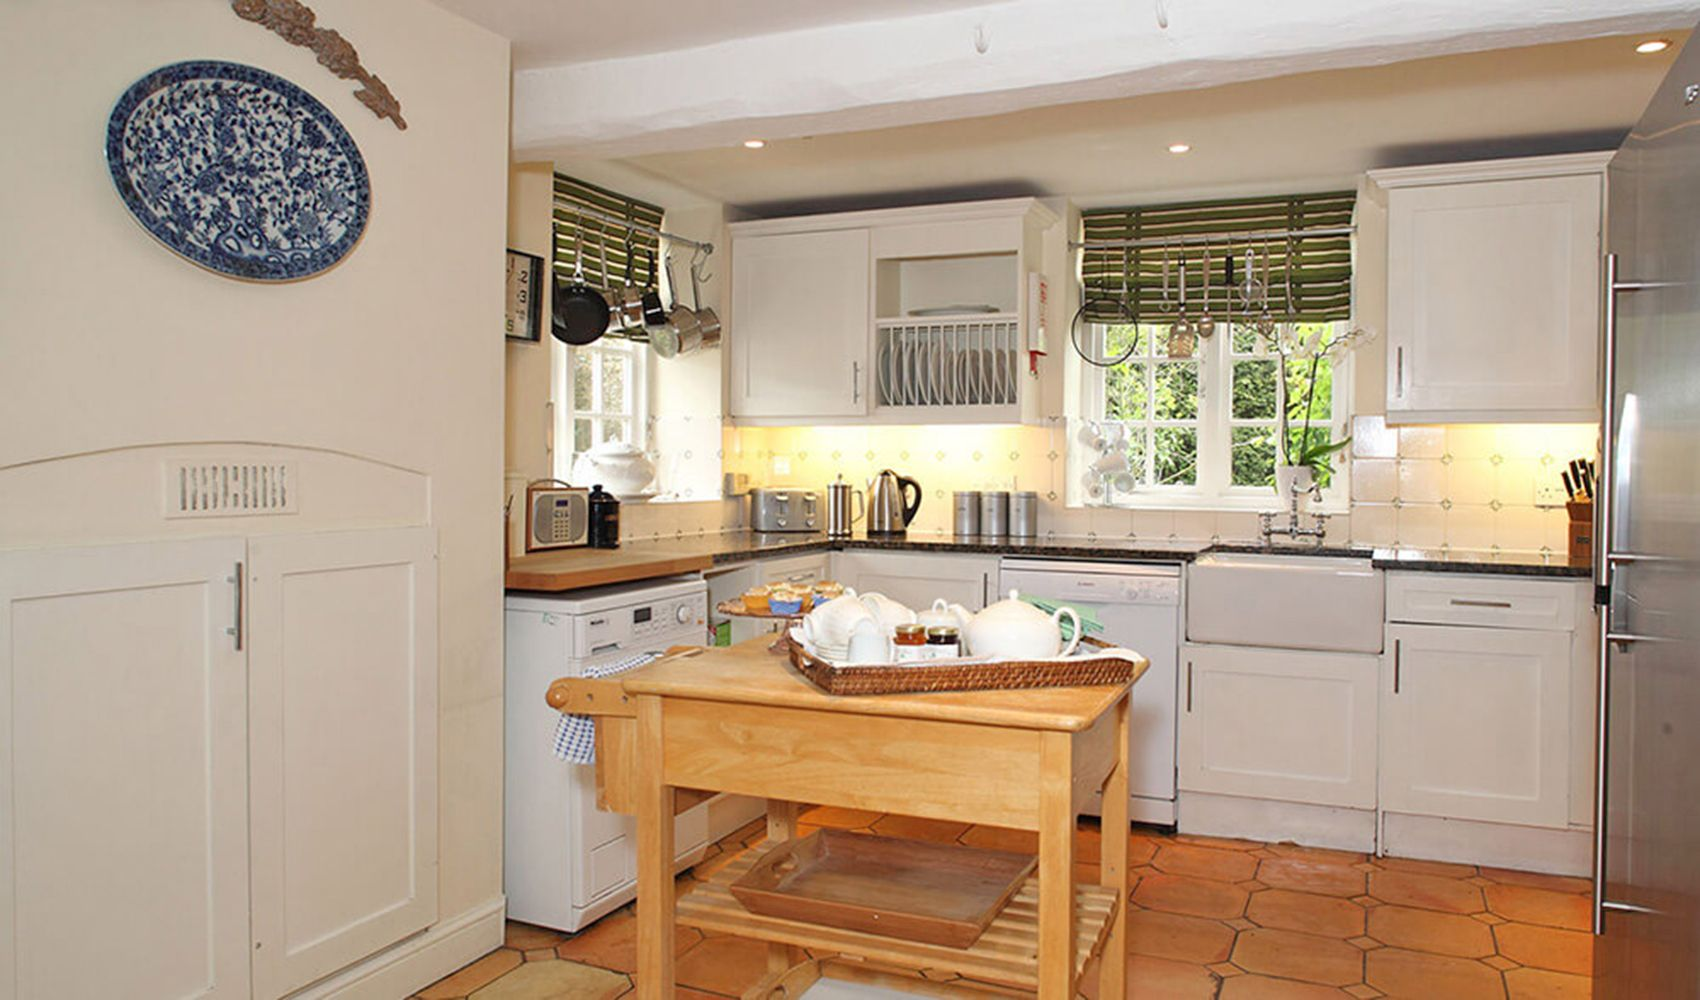 Ground floor: Well equipped, oak beamed kitchen with a dining area